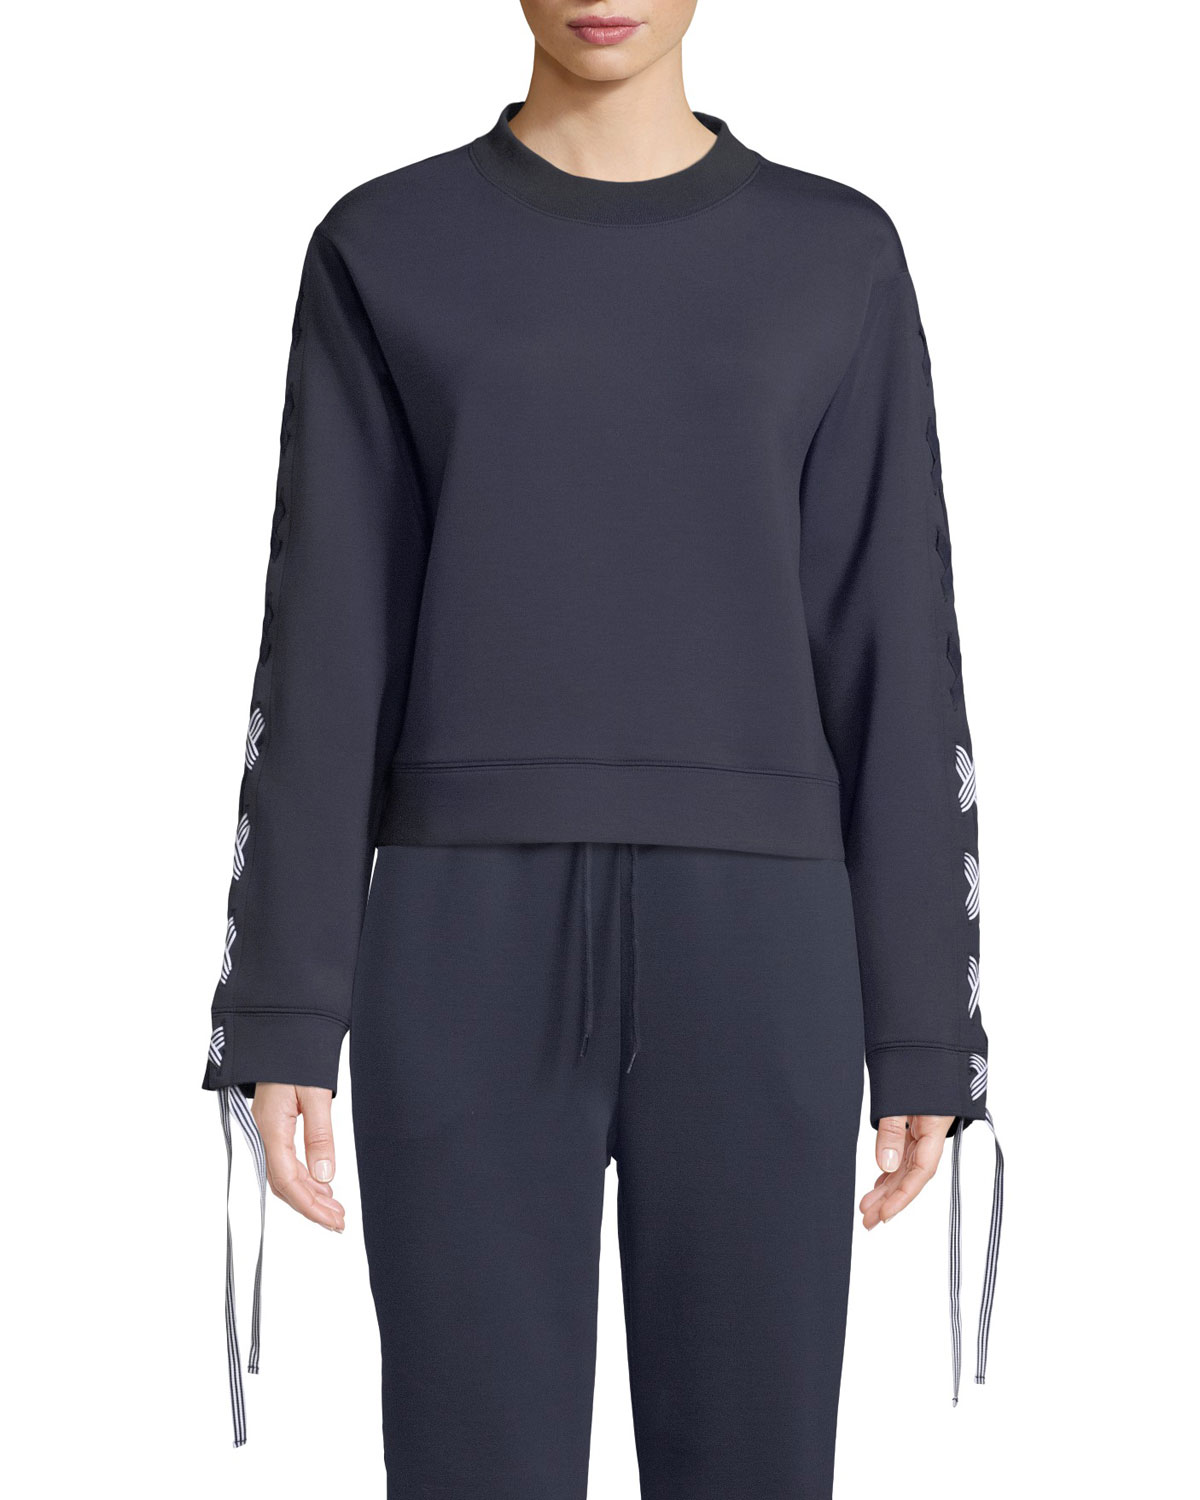 NYLORA Darcy Activewear Sweatshirt Top With Lace-Up Sleeves in Navy